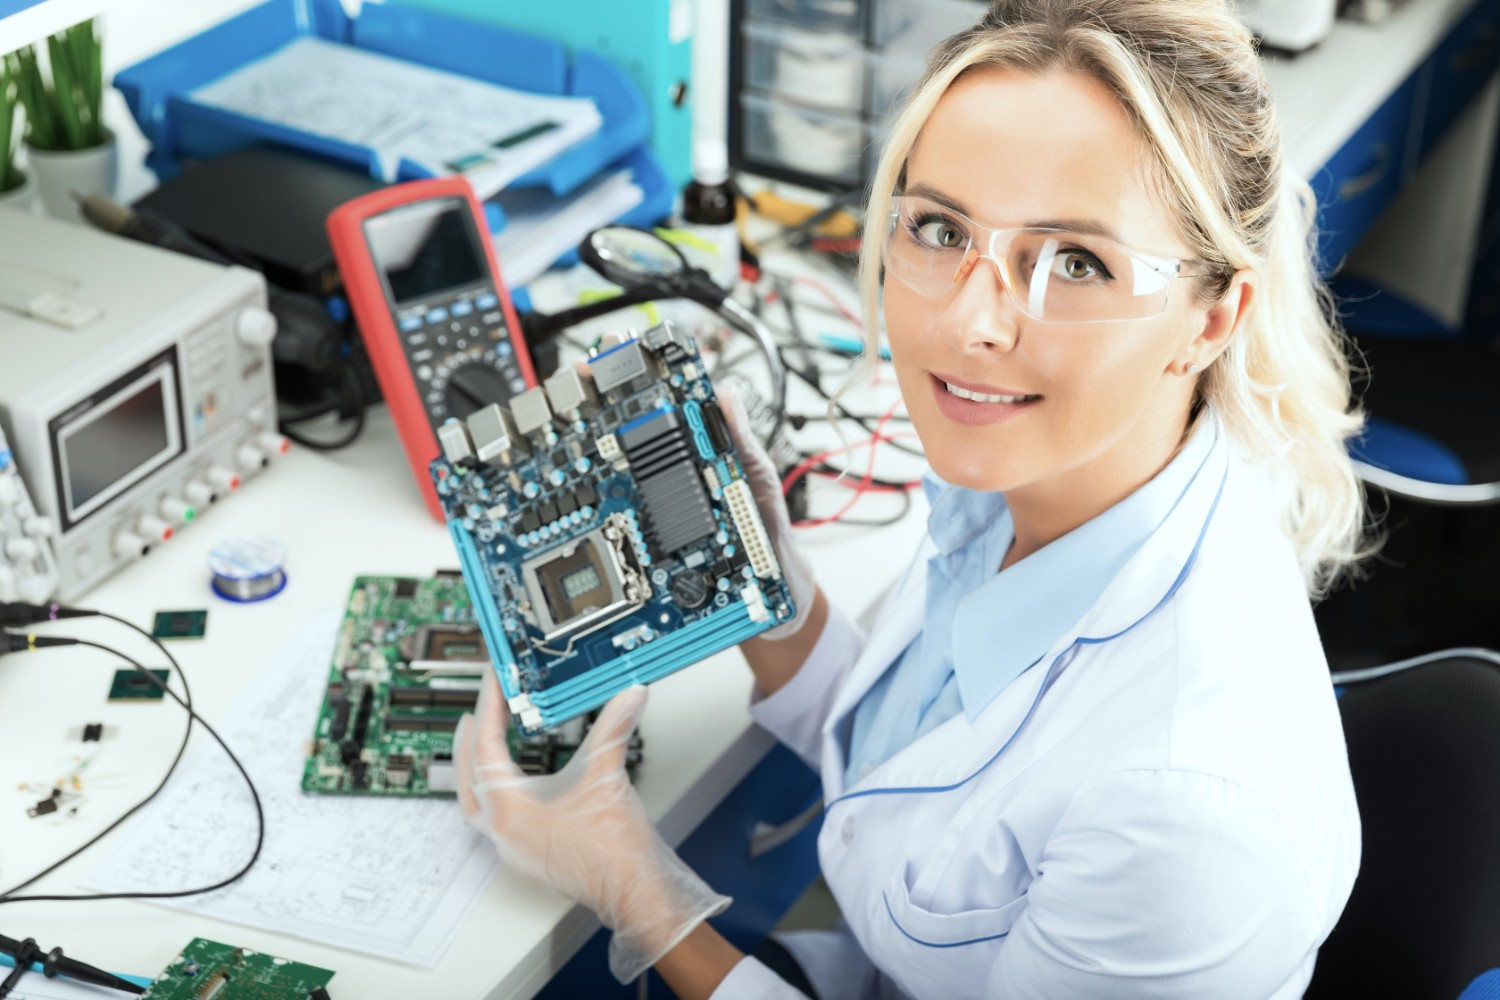 woman examining semiconductor part